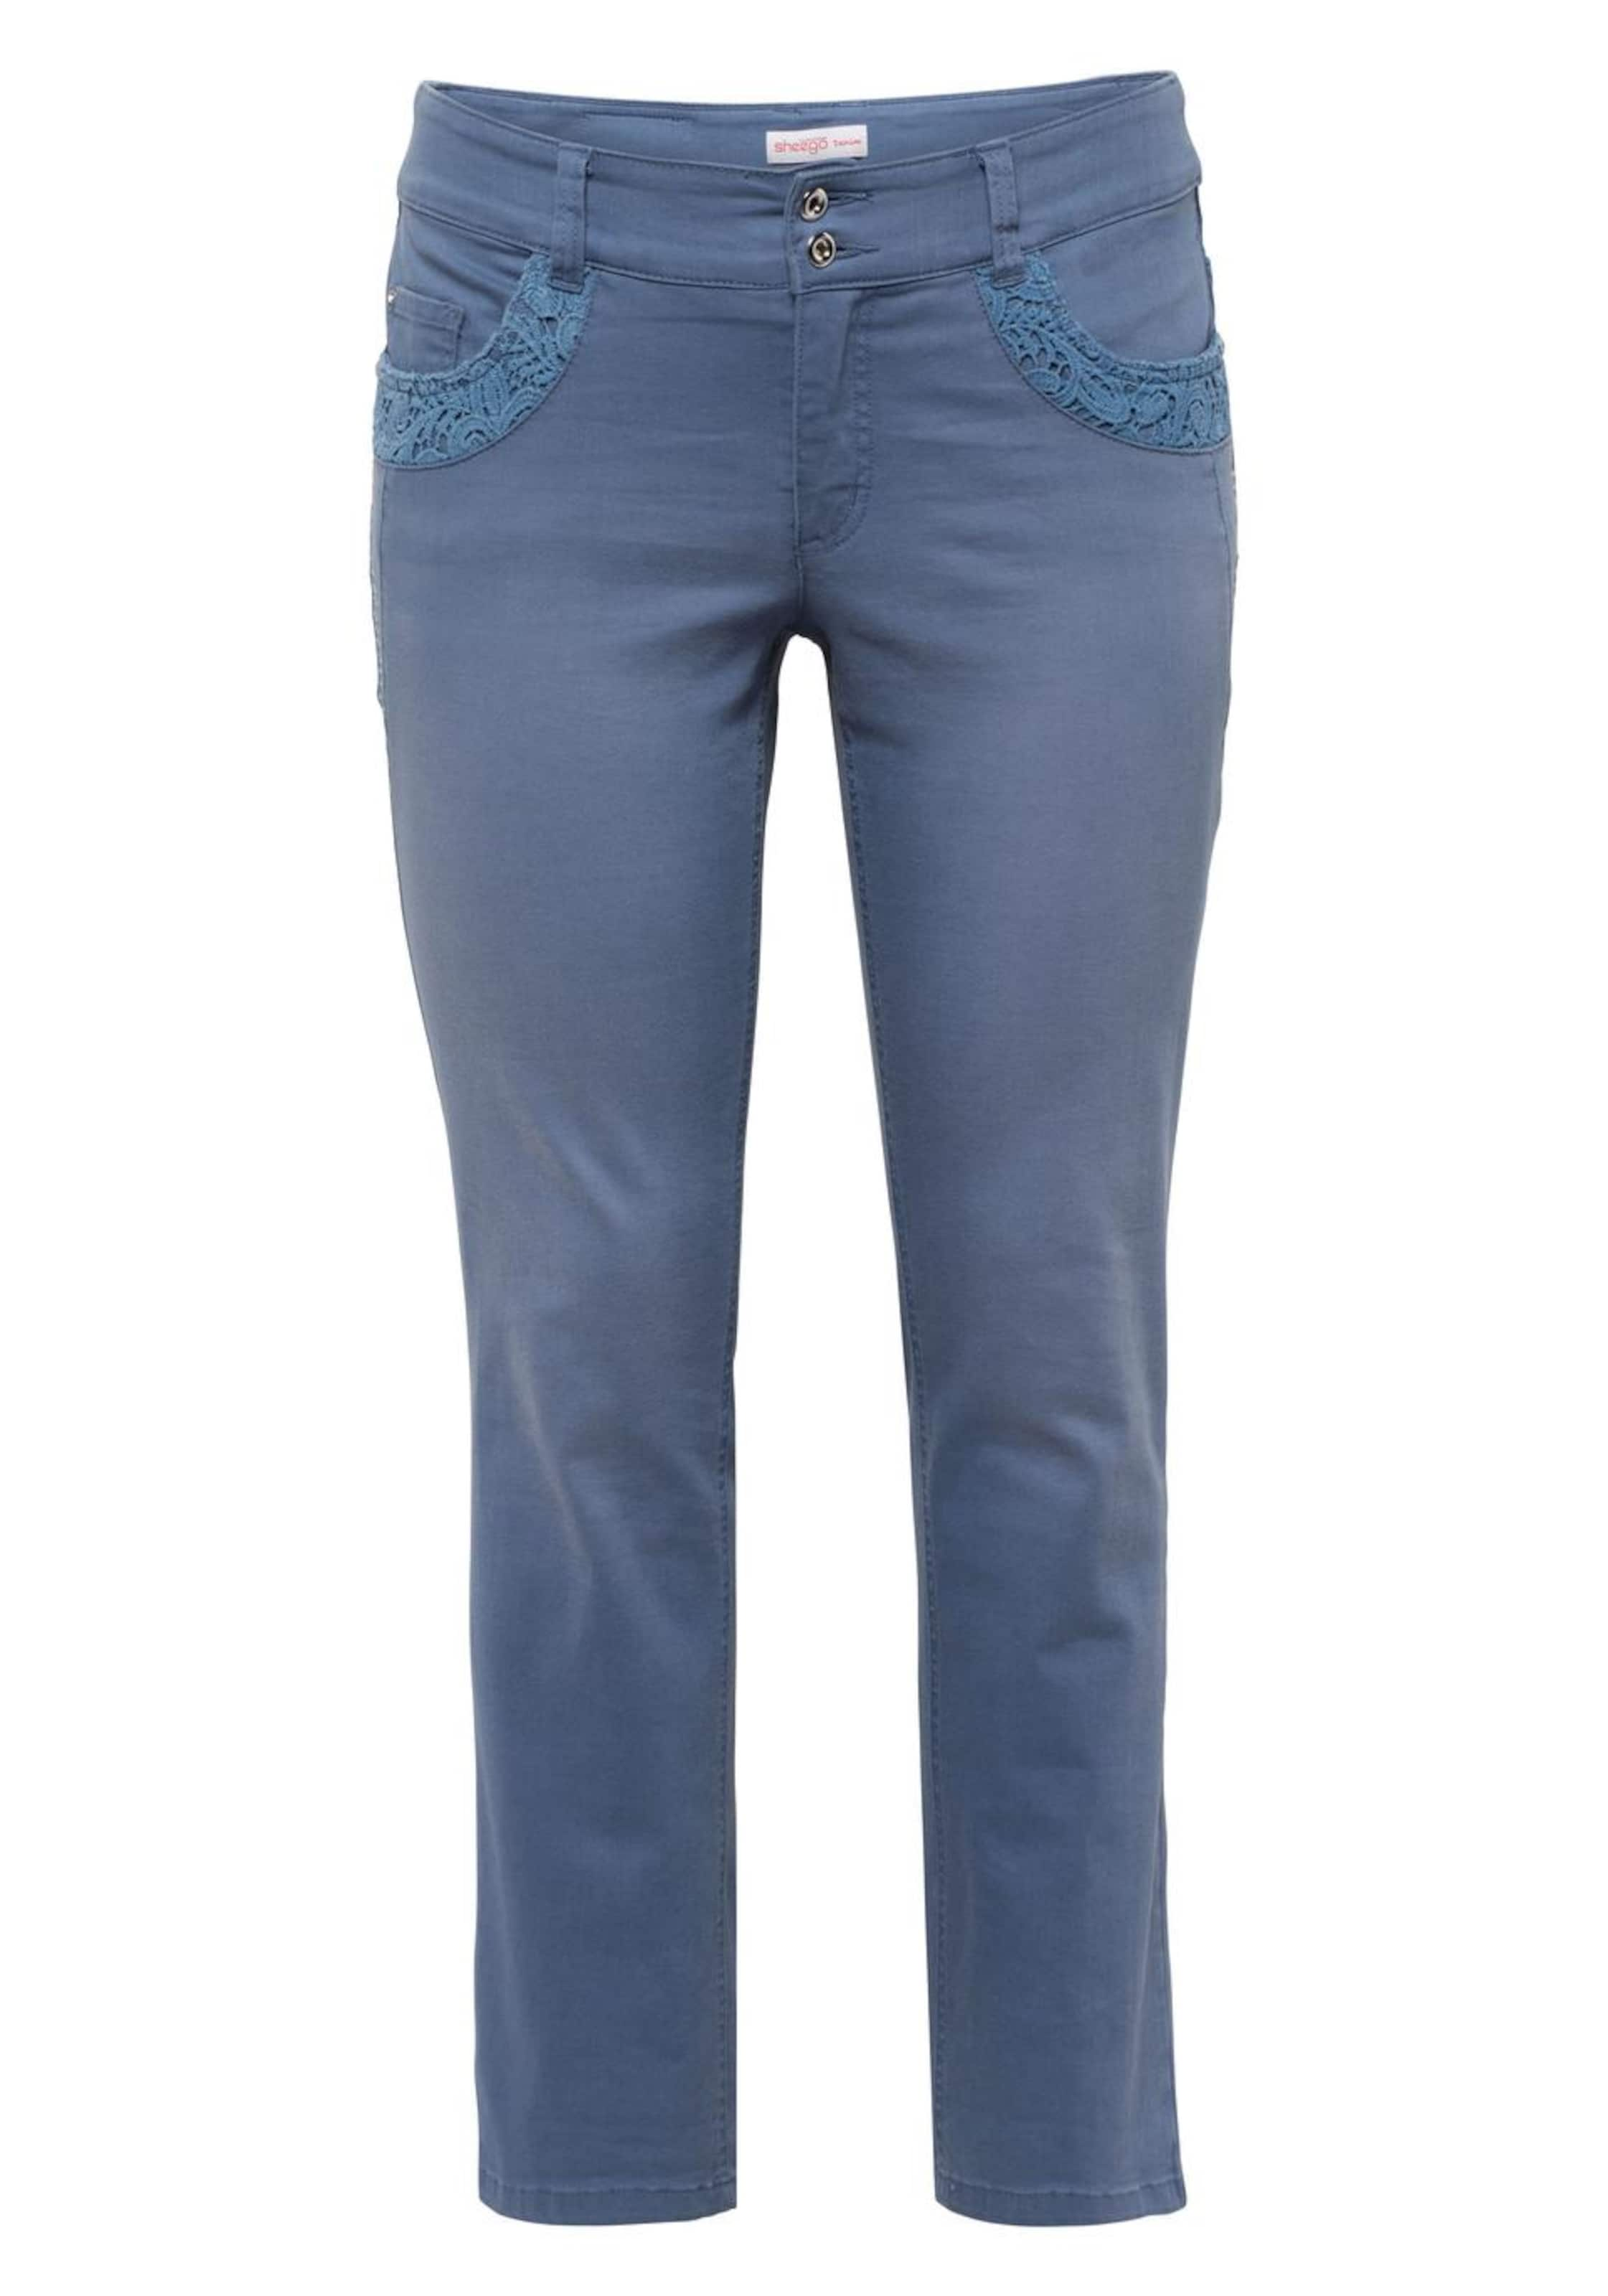 Sheego Blue Denim Sheego Denim In Sheego Jeans In In Blue Blue Jeans Jeans PuZTkOXi